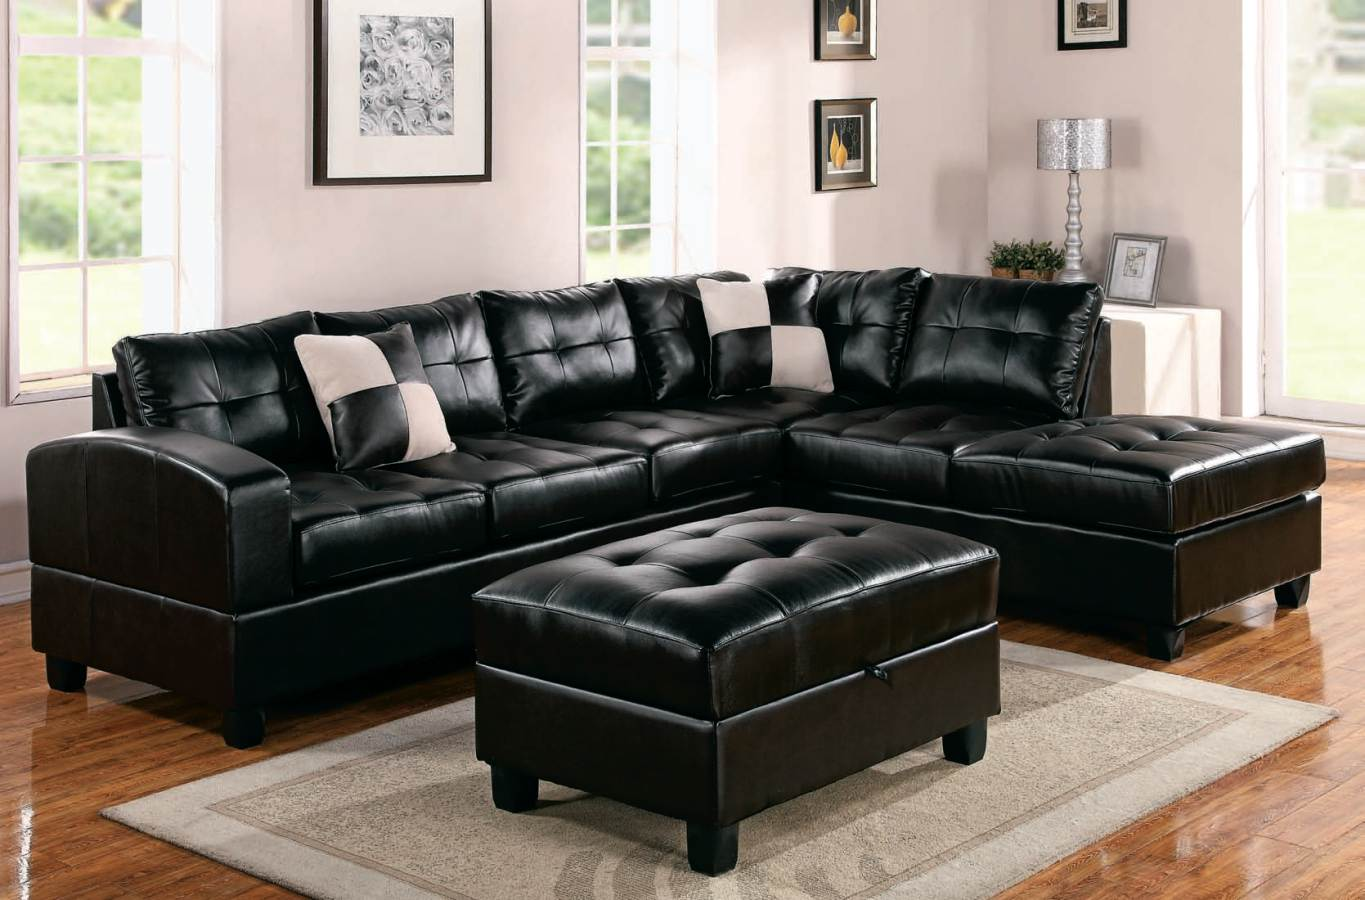 Modern Black Leather Sectional Sofa Home Furniture Design